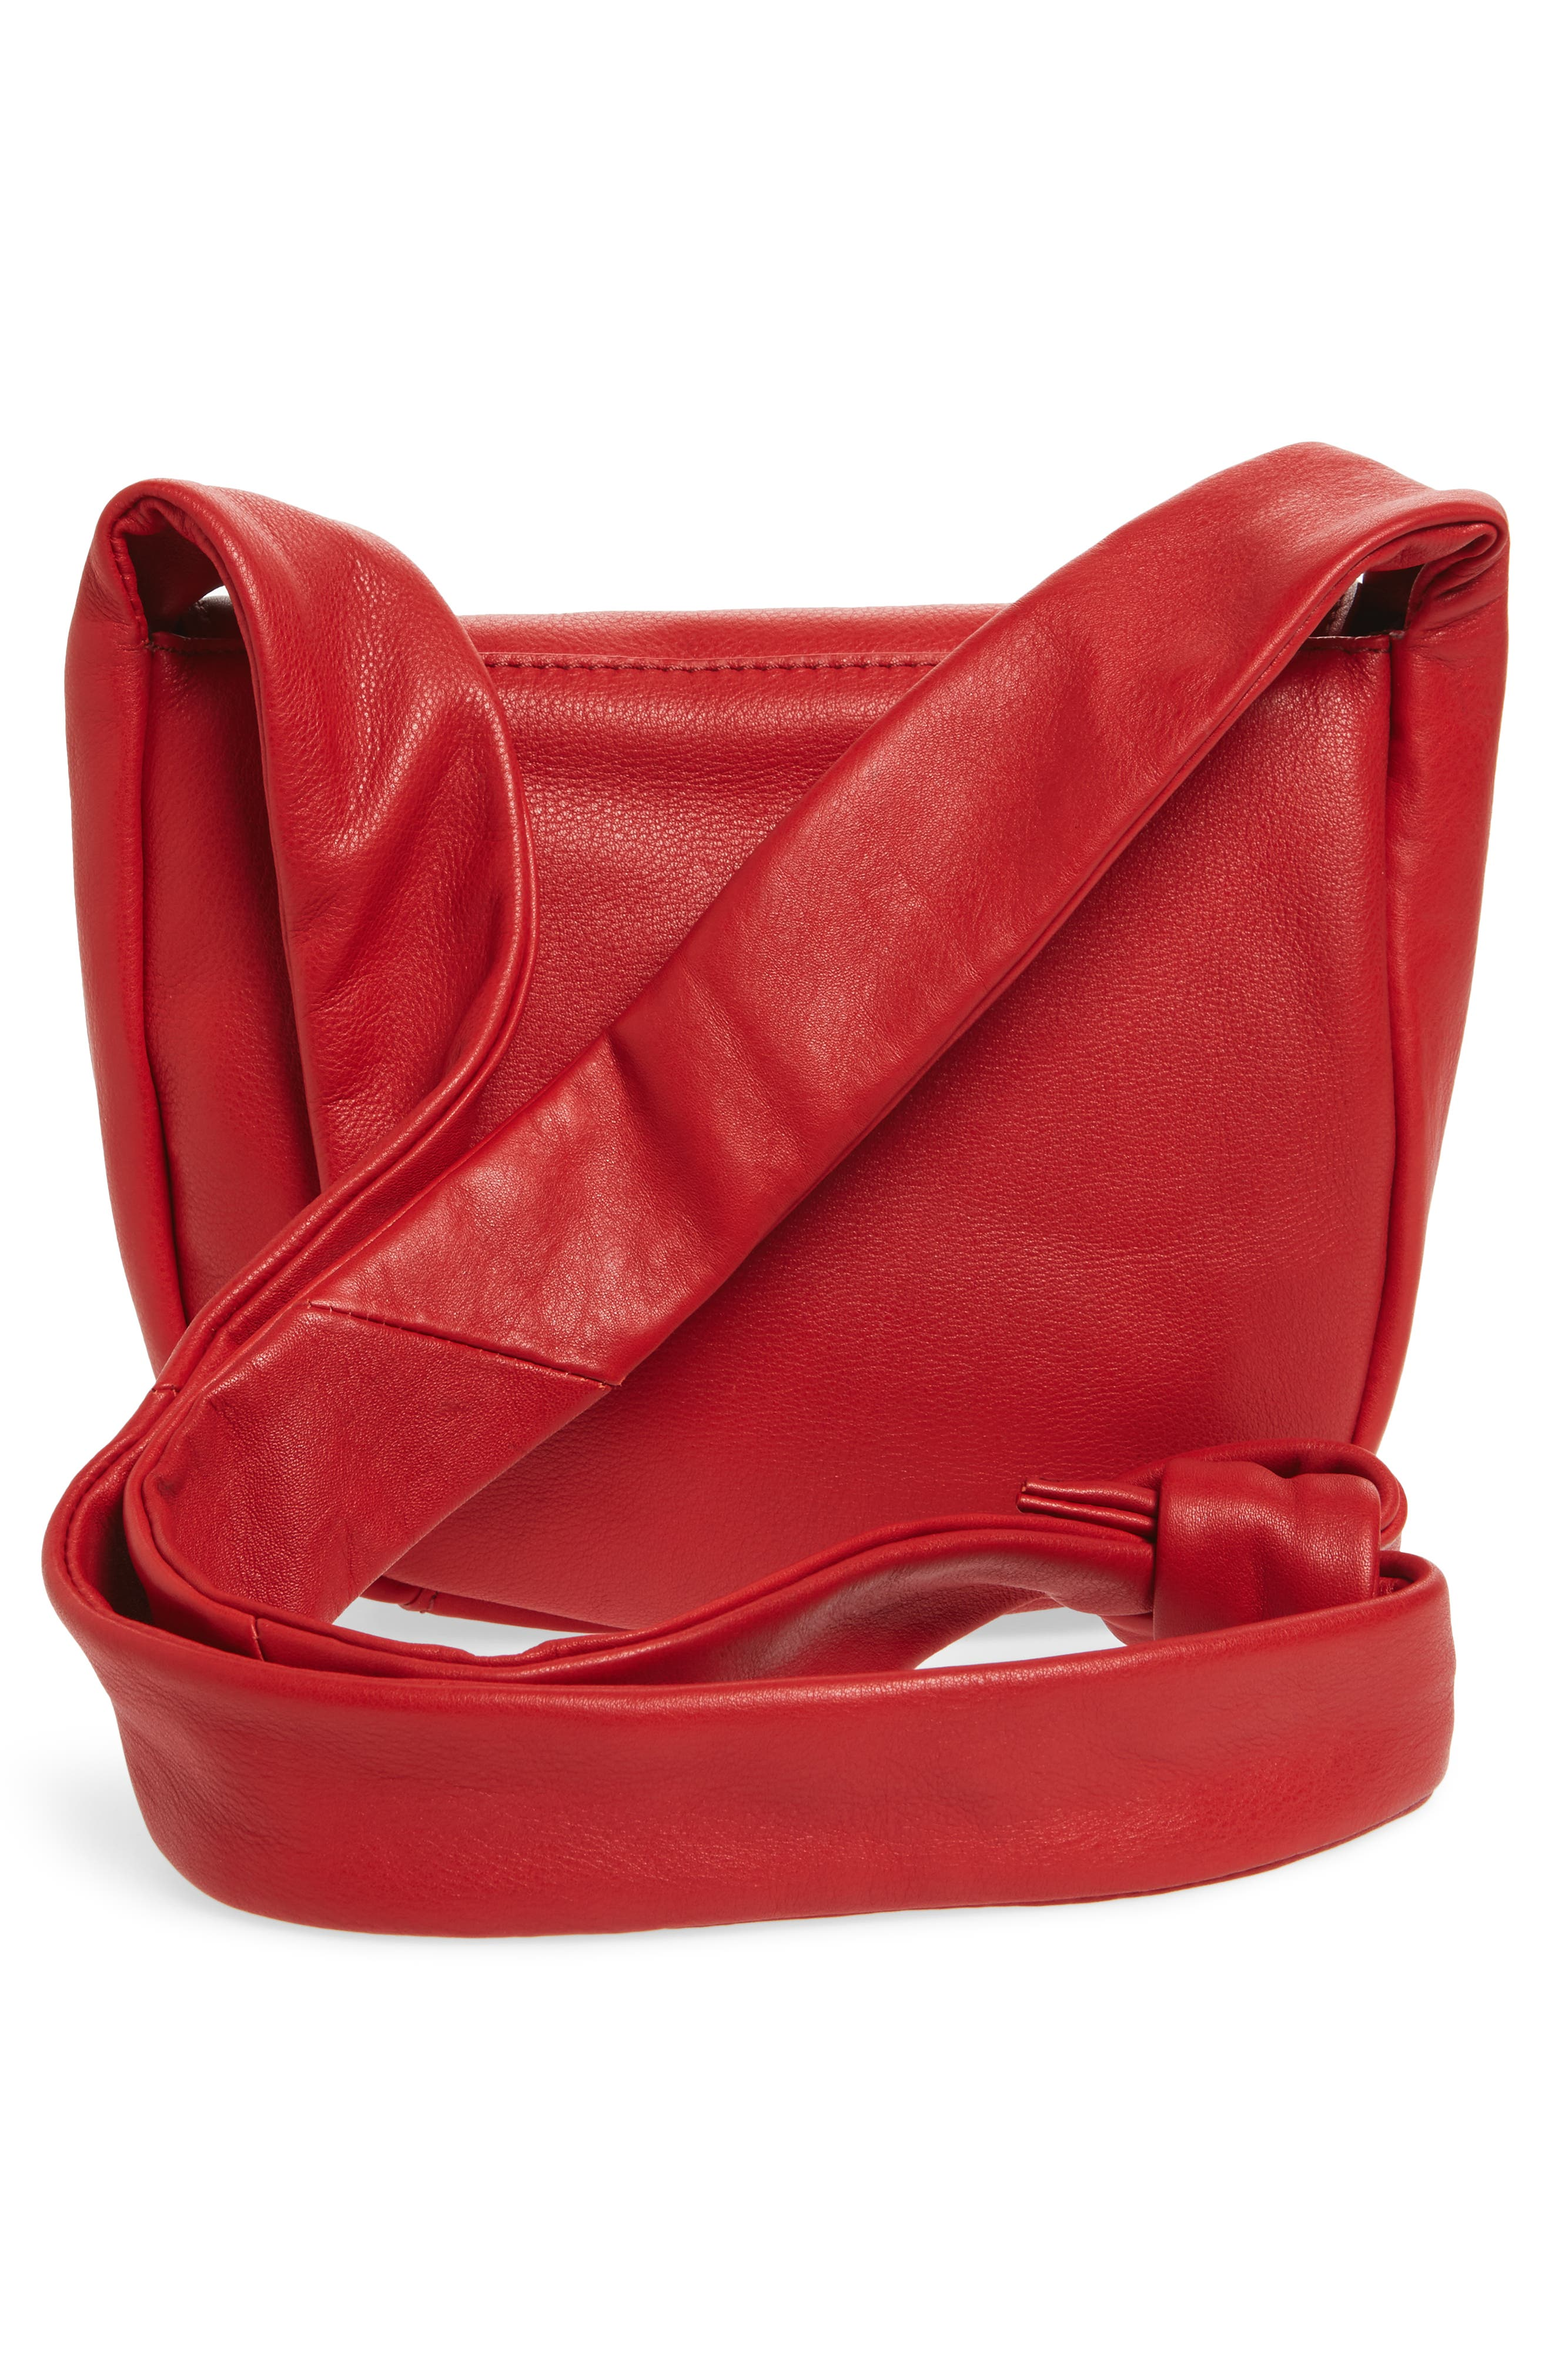 Alternate Image 3  - Topshop Jasmine Leather Saddle Bag